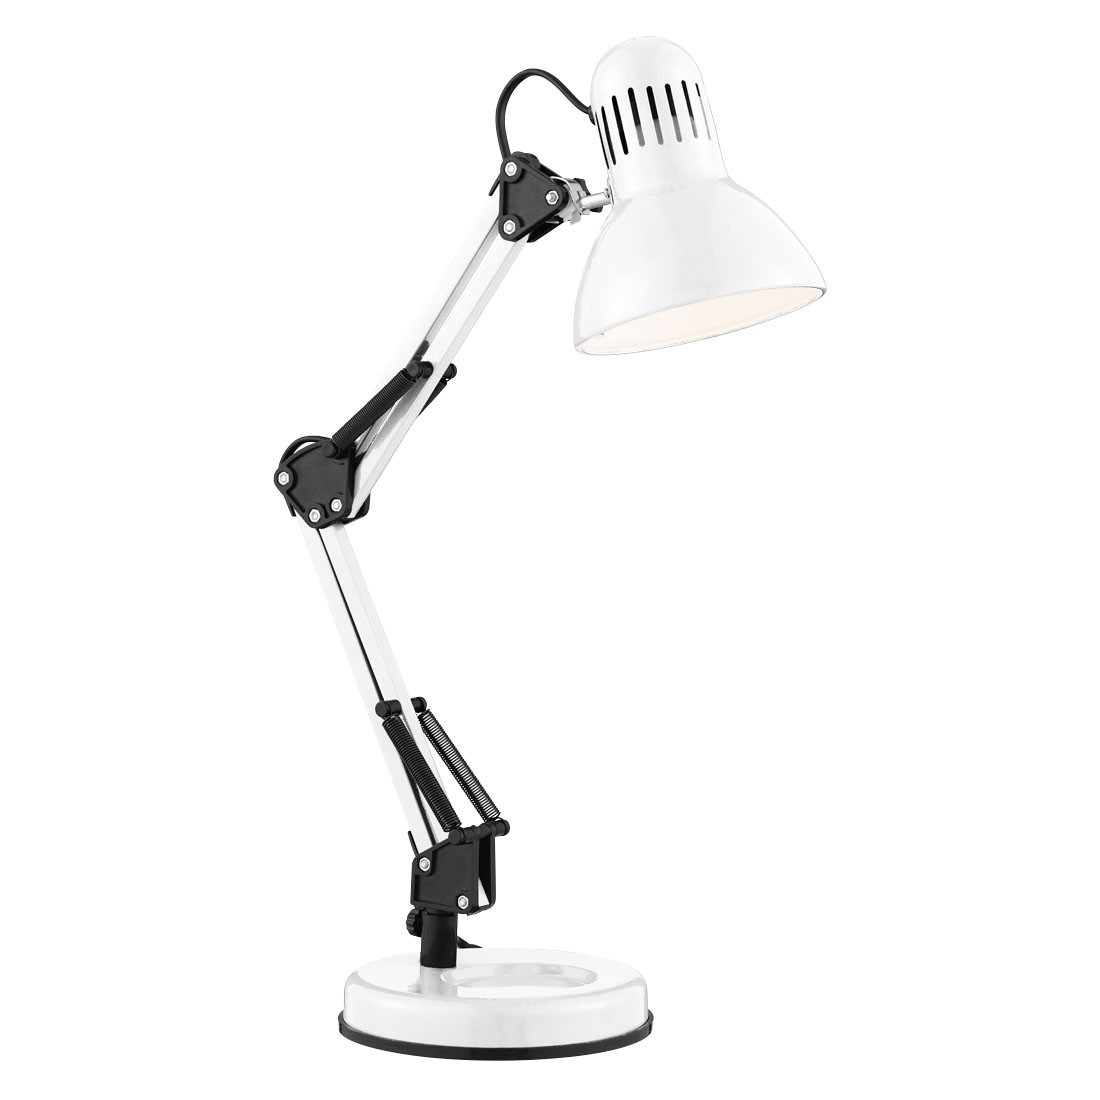 SHINY WHITE HOBBY TABLE LAMP - 2429wh